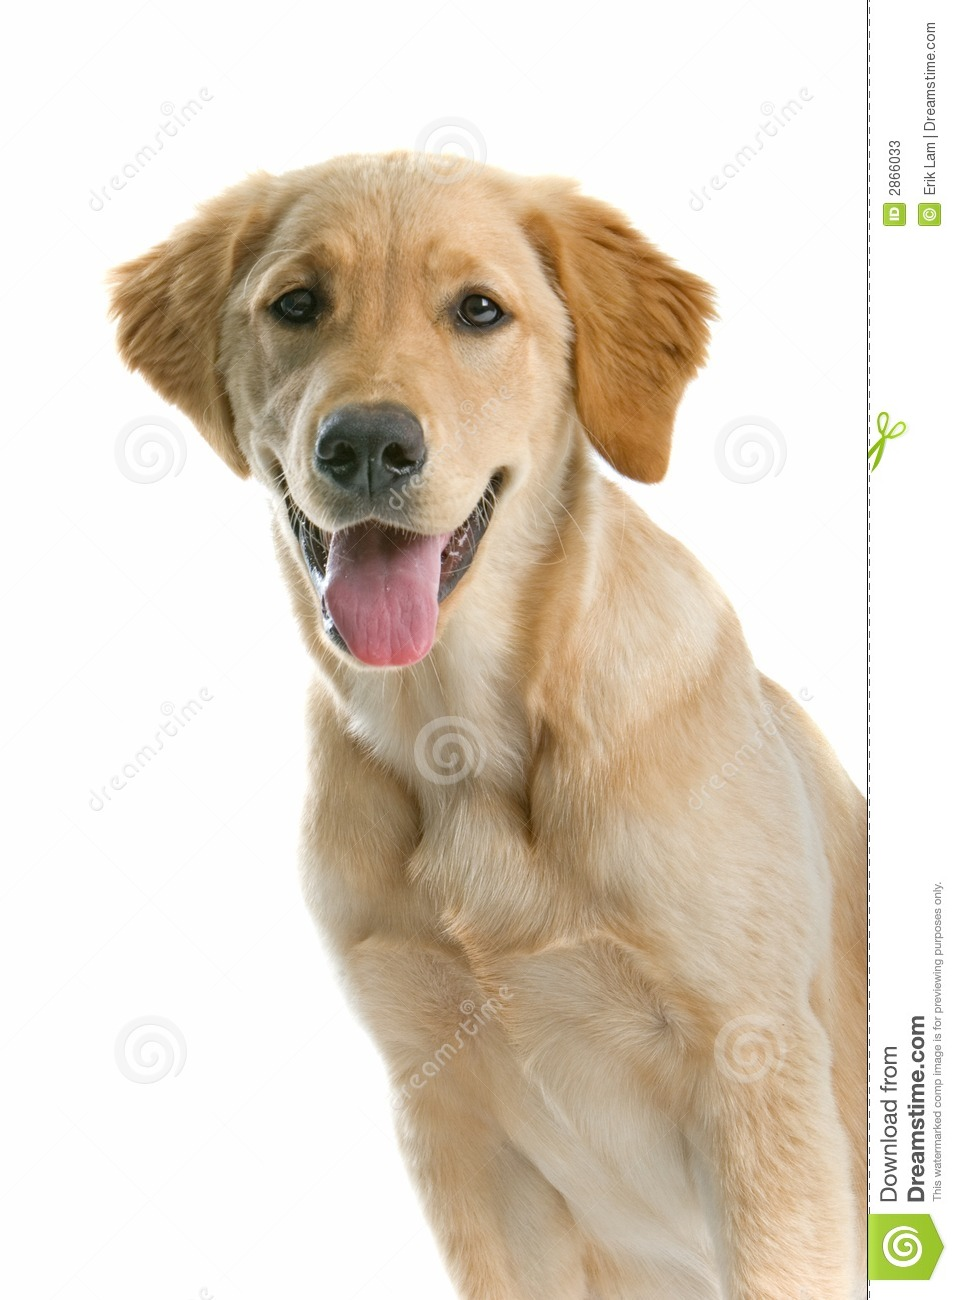 121,186 dogs stock images are available royalty-free.